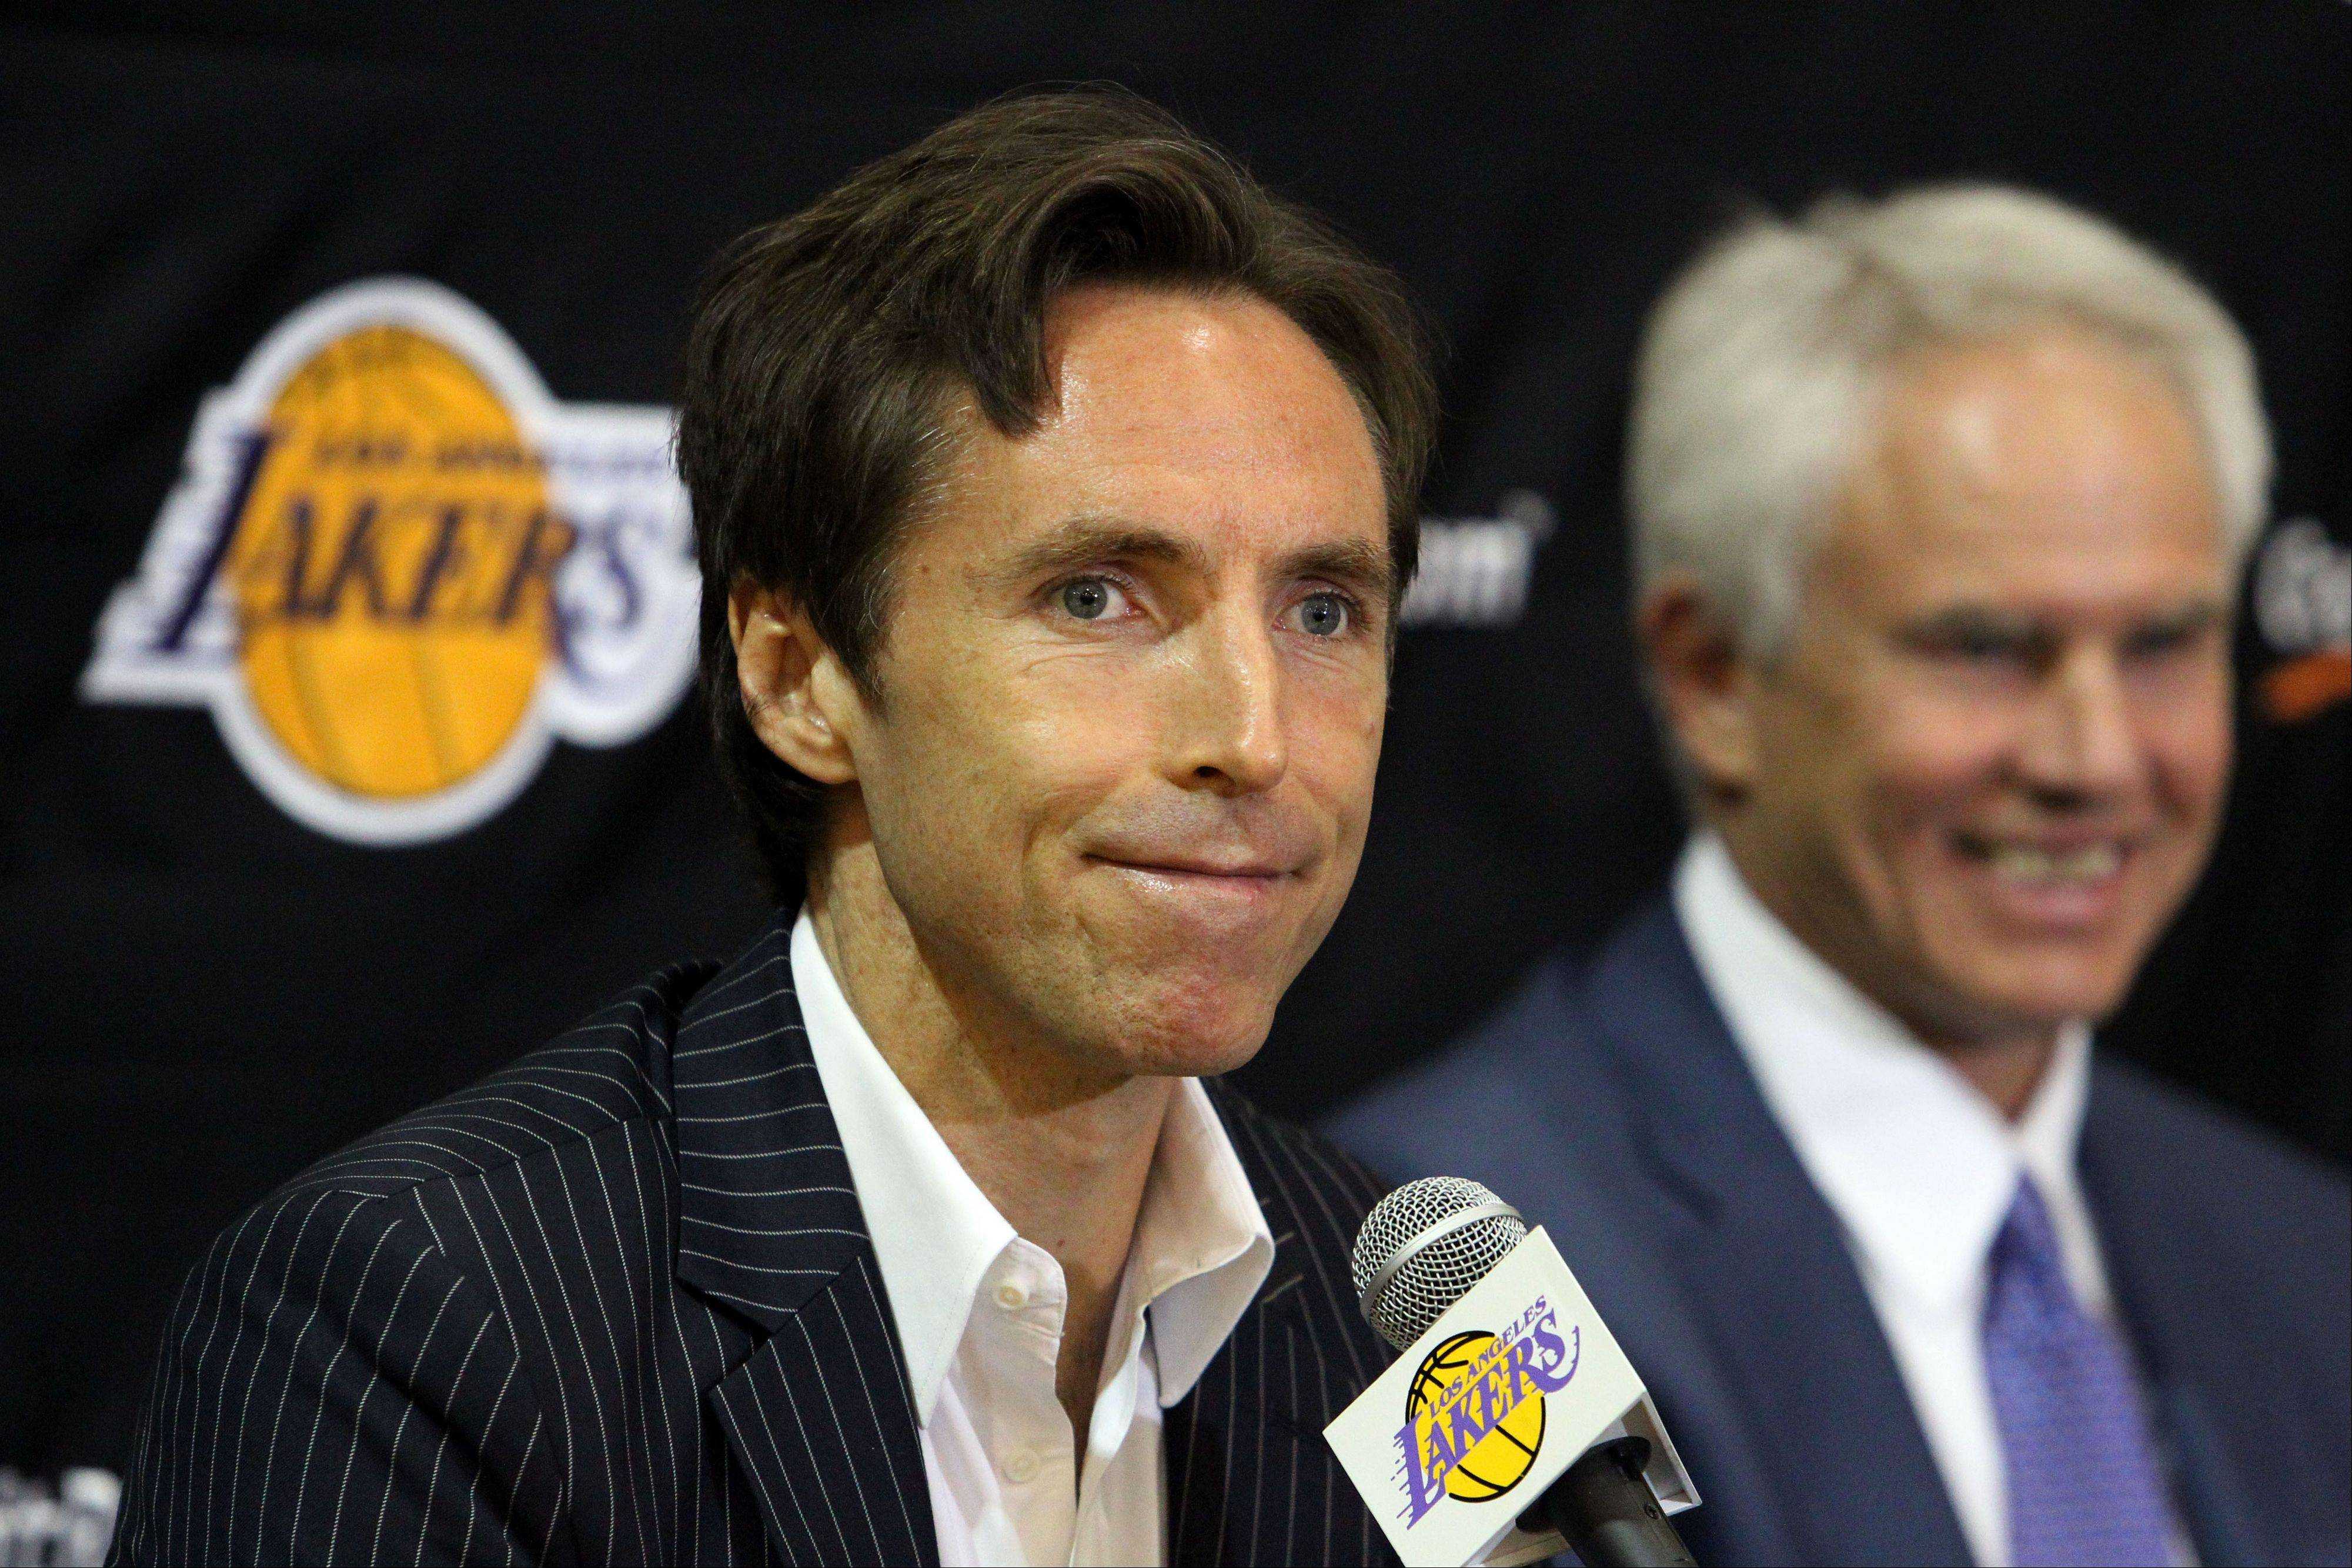 Newly-acquired Los Angeles Lakers guard Steve Nash, left, and general manager Mitch Kupchak appear Wednesday at a news conference at the team's headquarters in El Segundo, Calif. The Lakers acquired the two-time MVP from the Phoenix Suns in exchange for first round draft picks in 2013 and 2015 as well as second round draft picks in 2013 and 2014.